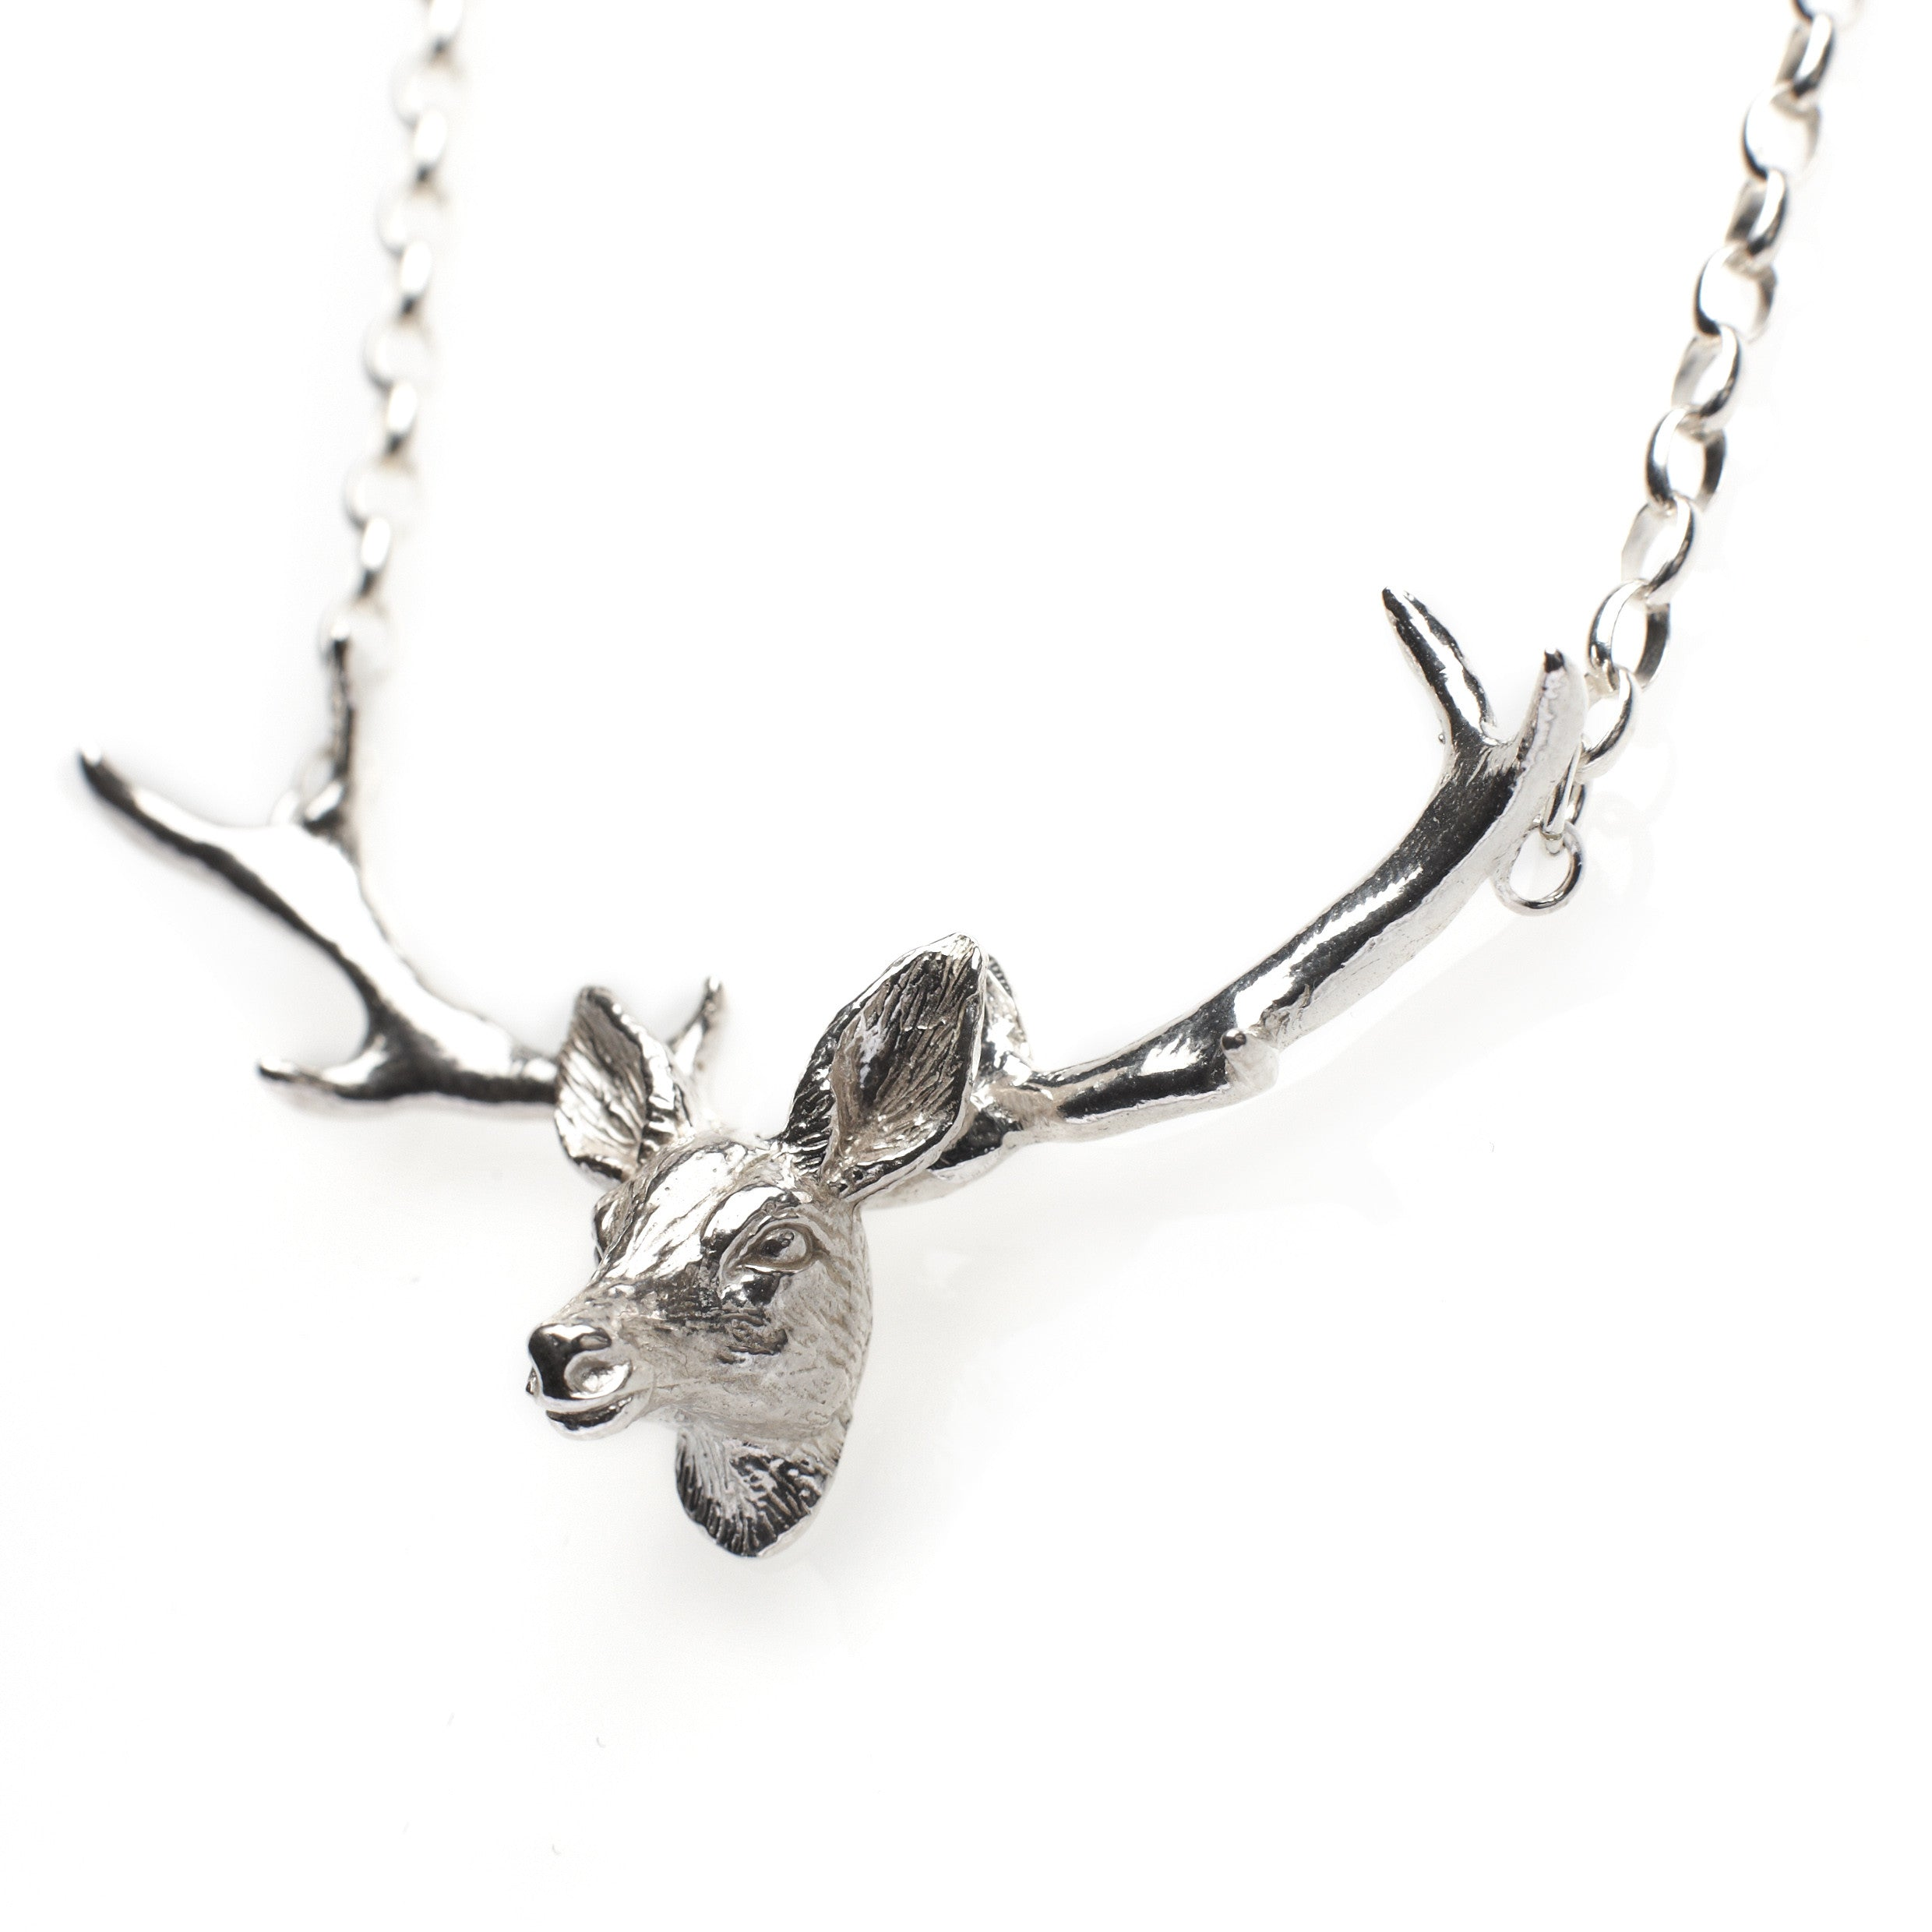 crystaluxe overstock jewelry shipping crystals over free elements with on silver orders sterling plated watches pendant giraffe in product gold deer swarovski